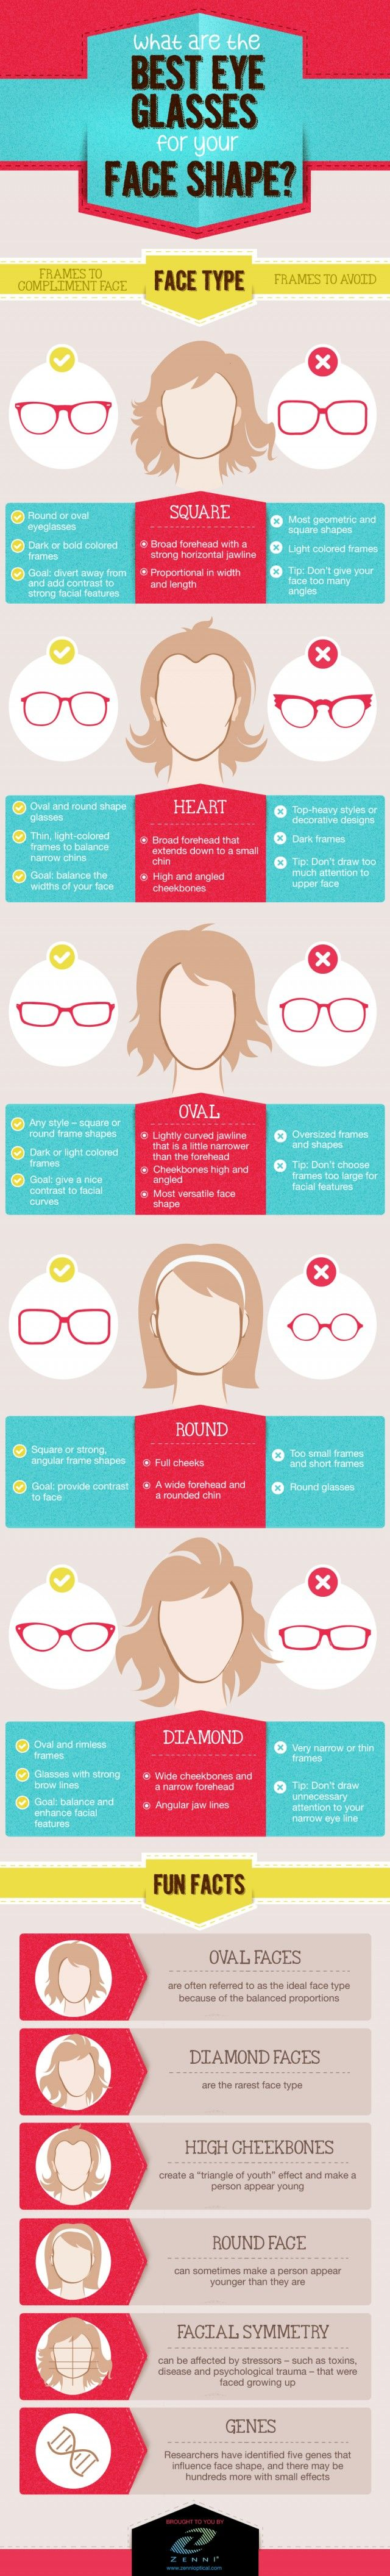 What are the best eye glasses for your face shape | infographic